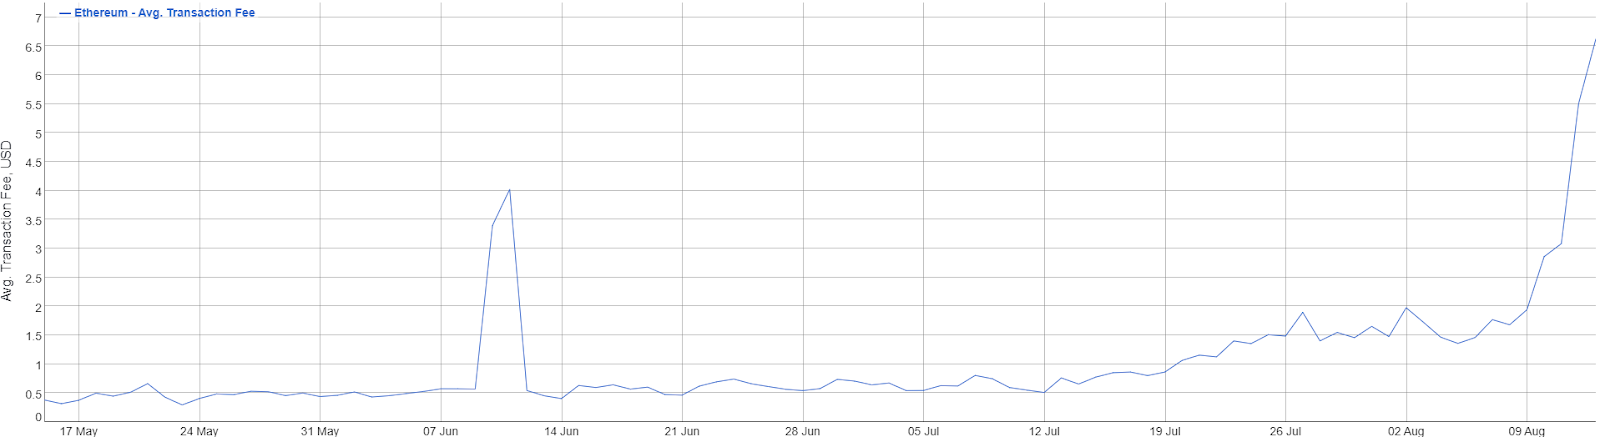 Ethereum transactions fees, 3-month chart